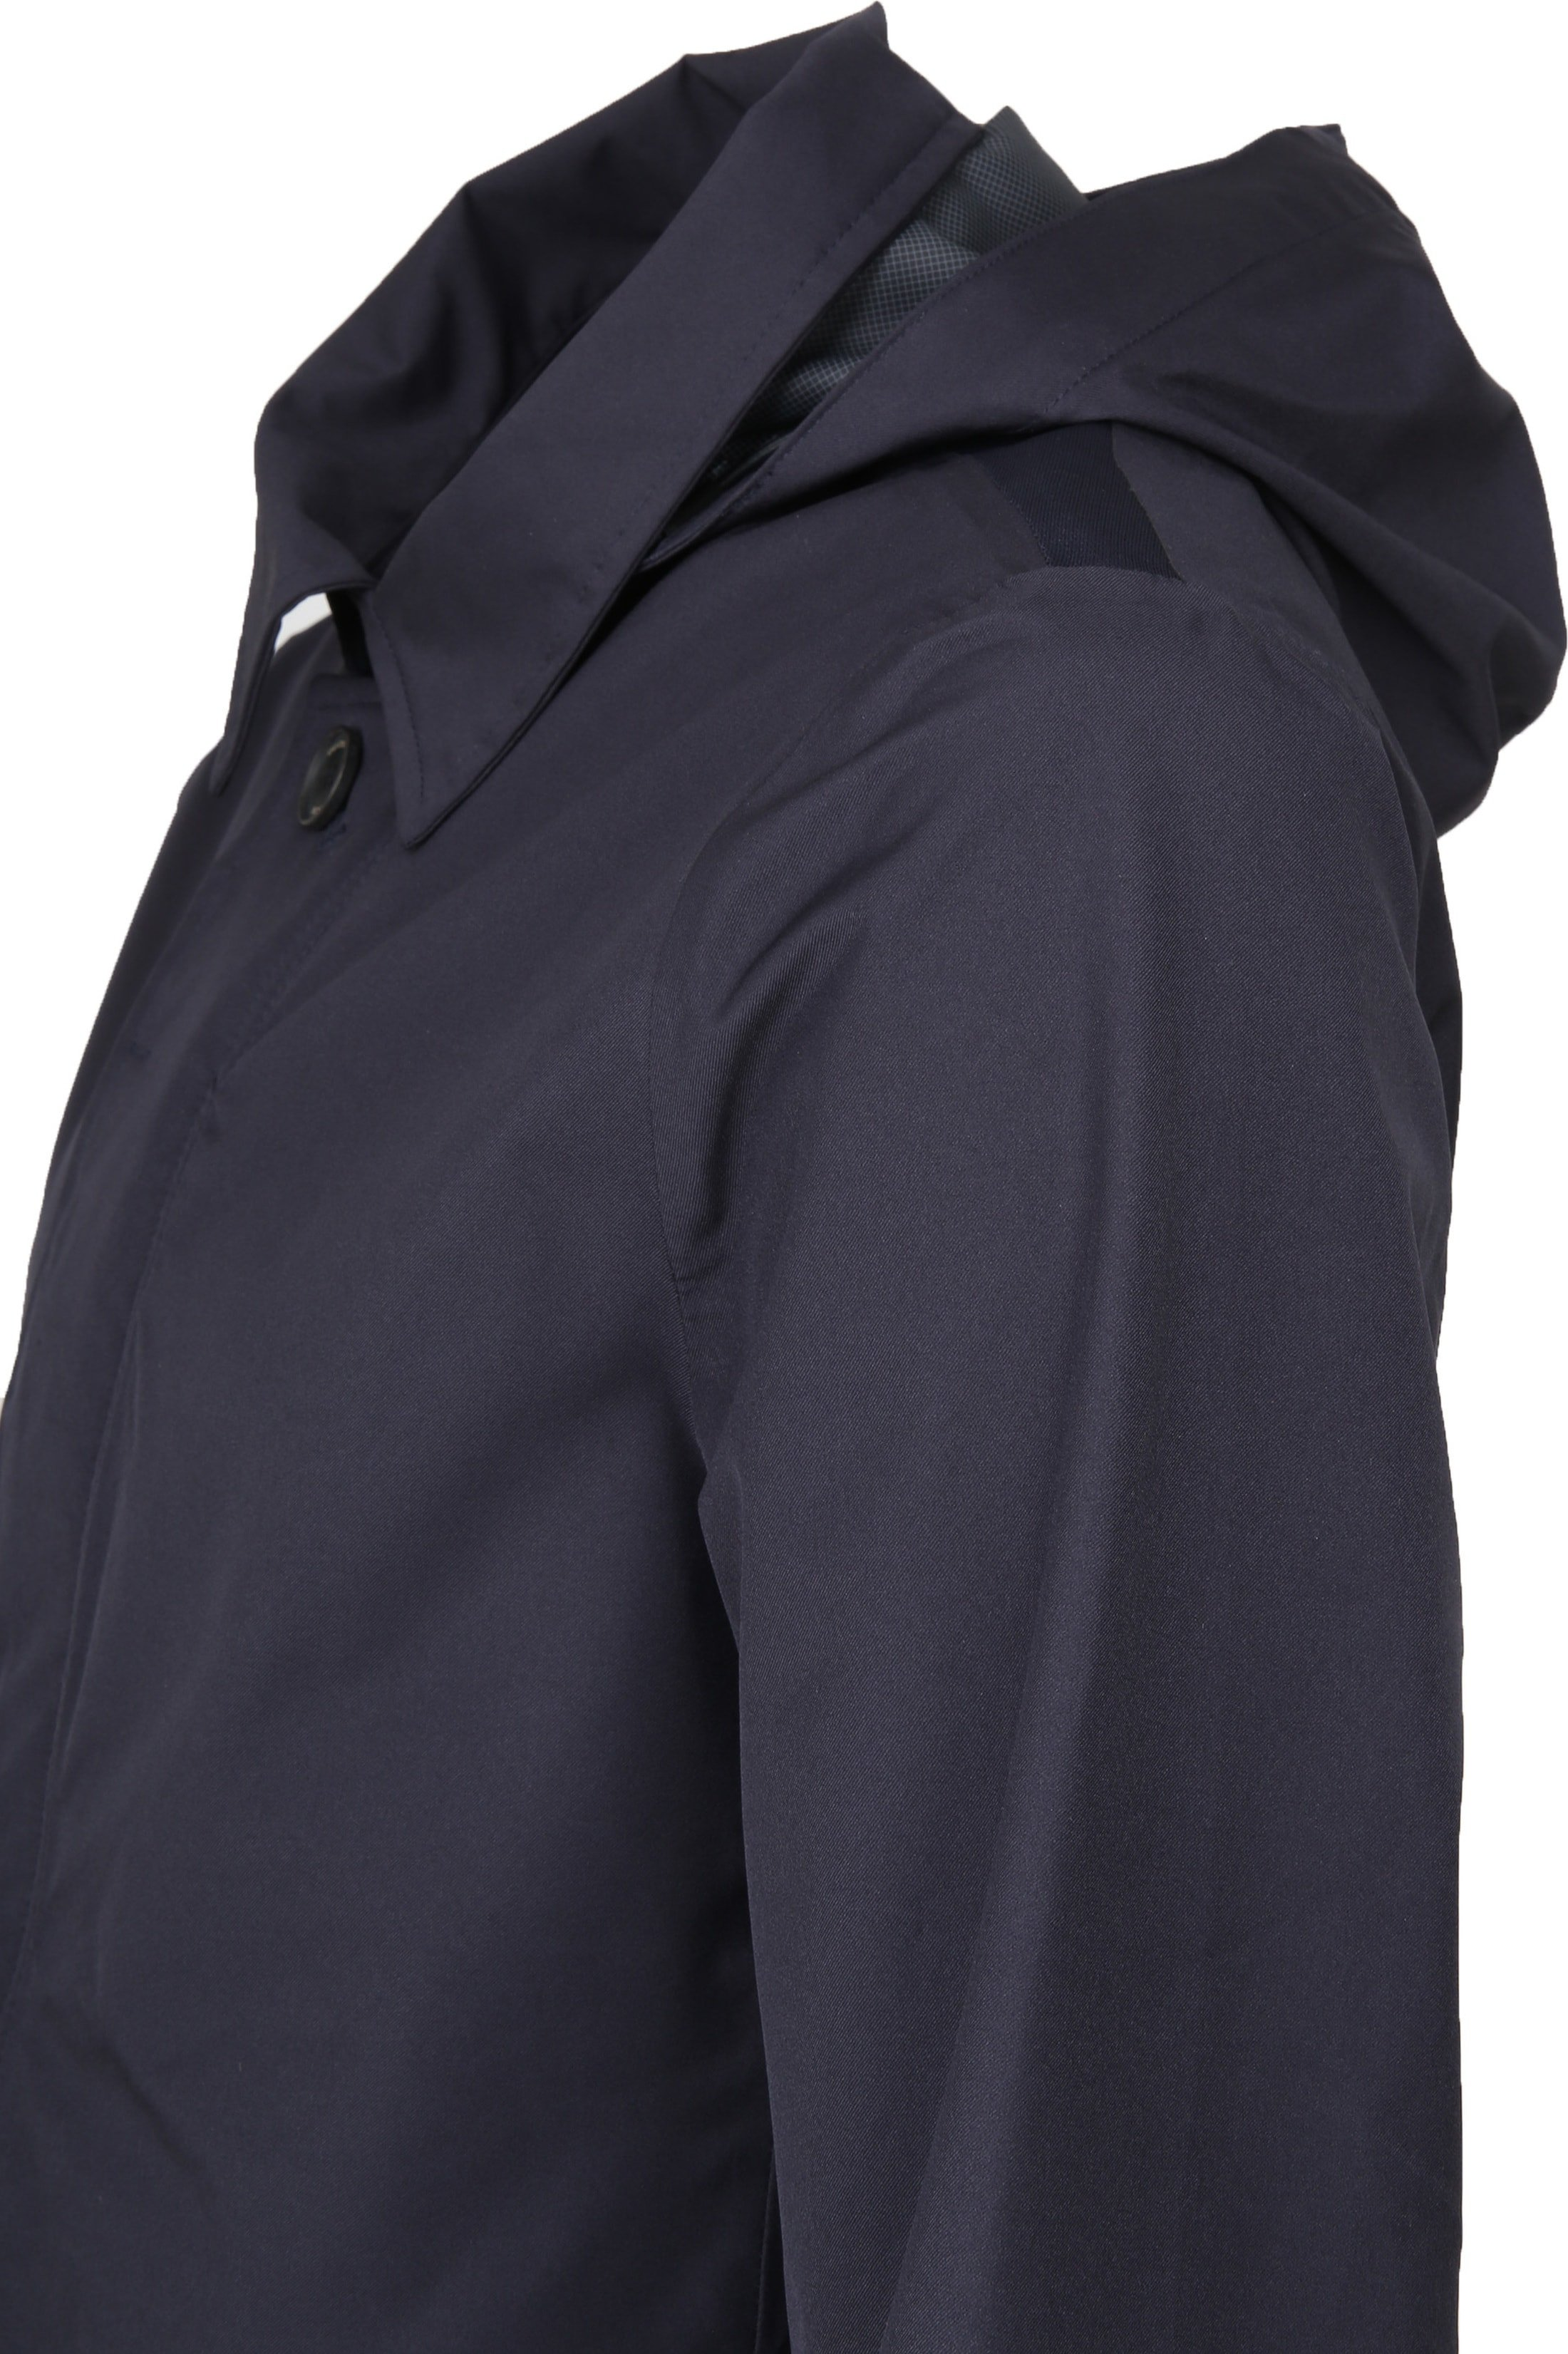 Geox Coat Sandford Navy foto 3